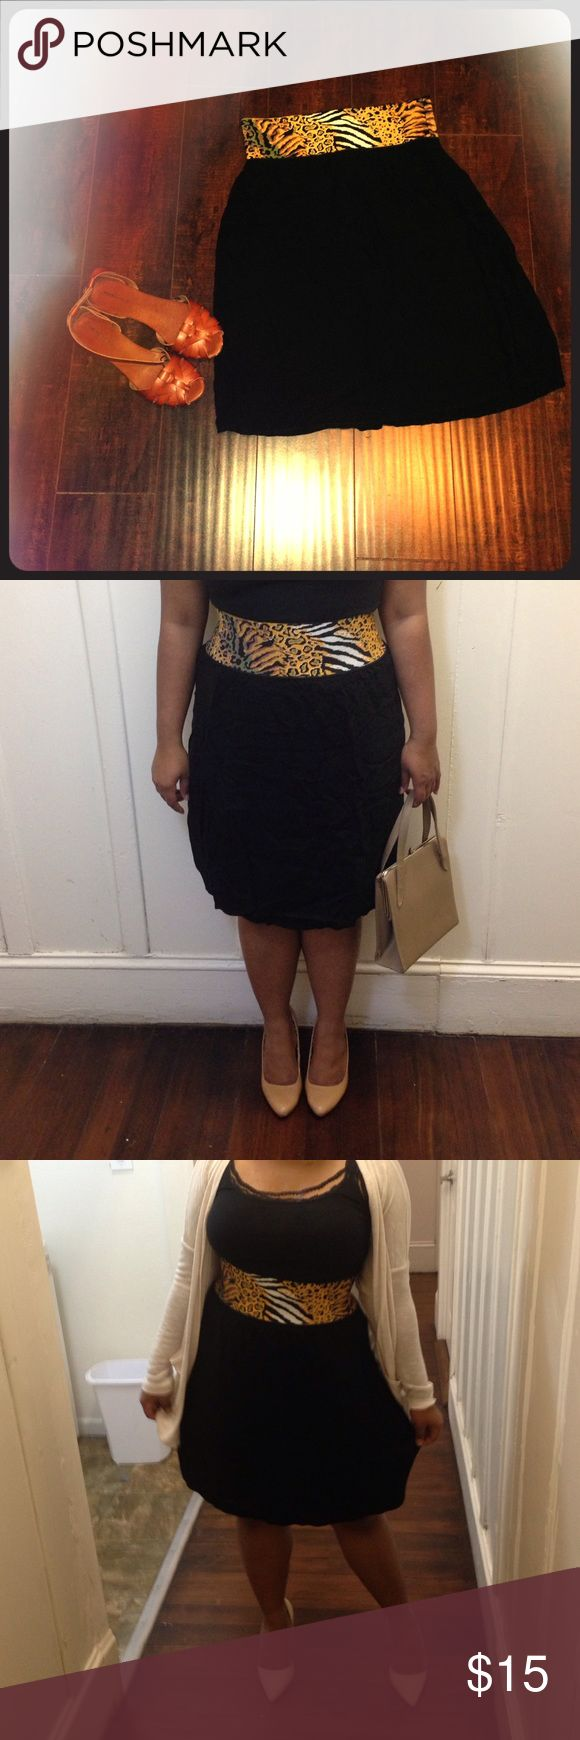 Black tribal print skirt. Print tribal belt area has a stretch material that extenuates your waist. Judy Knapp California is a 80 vintage label. Judy Knapp California Skirts Circle & Skater